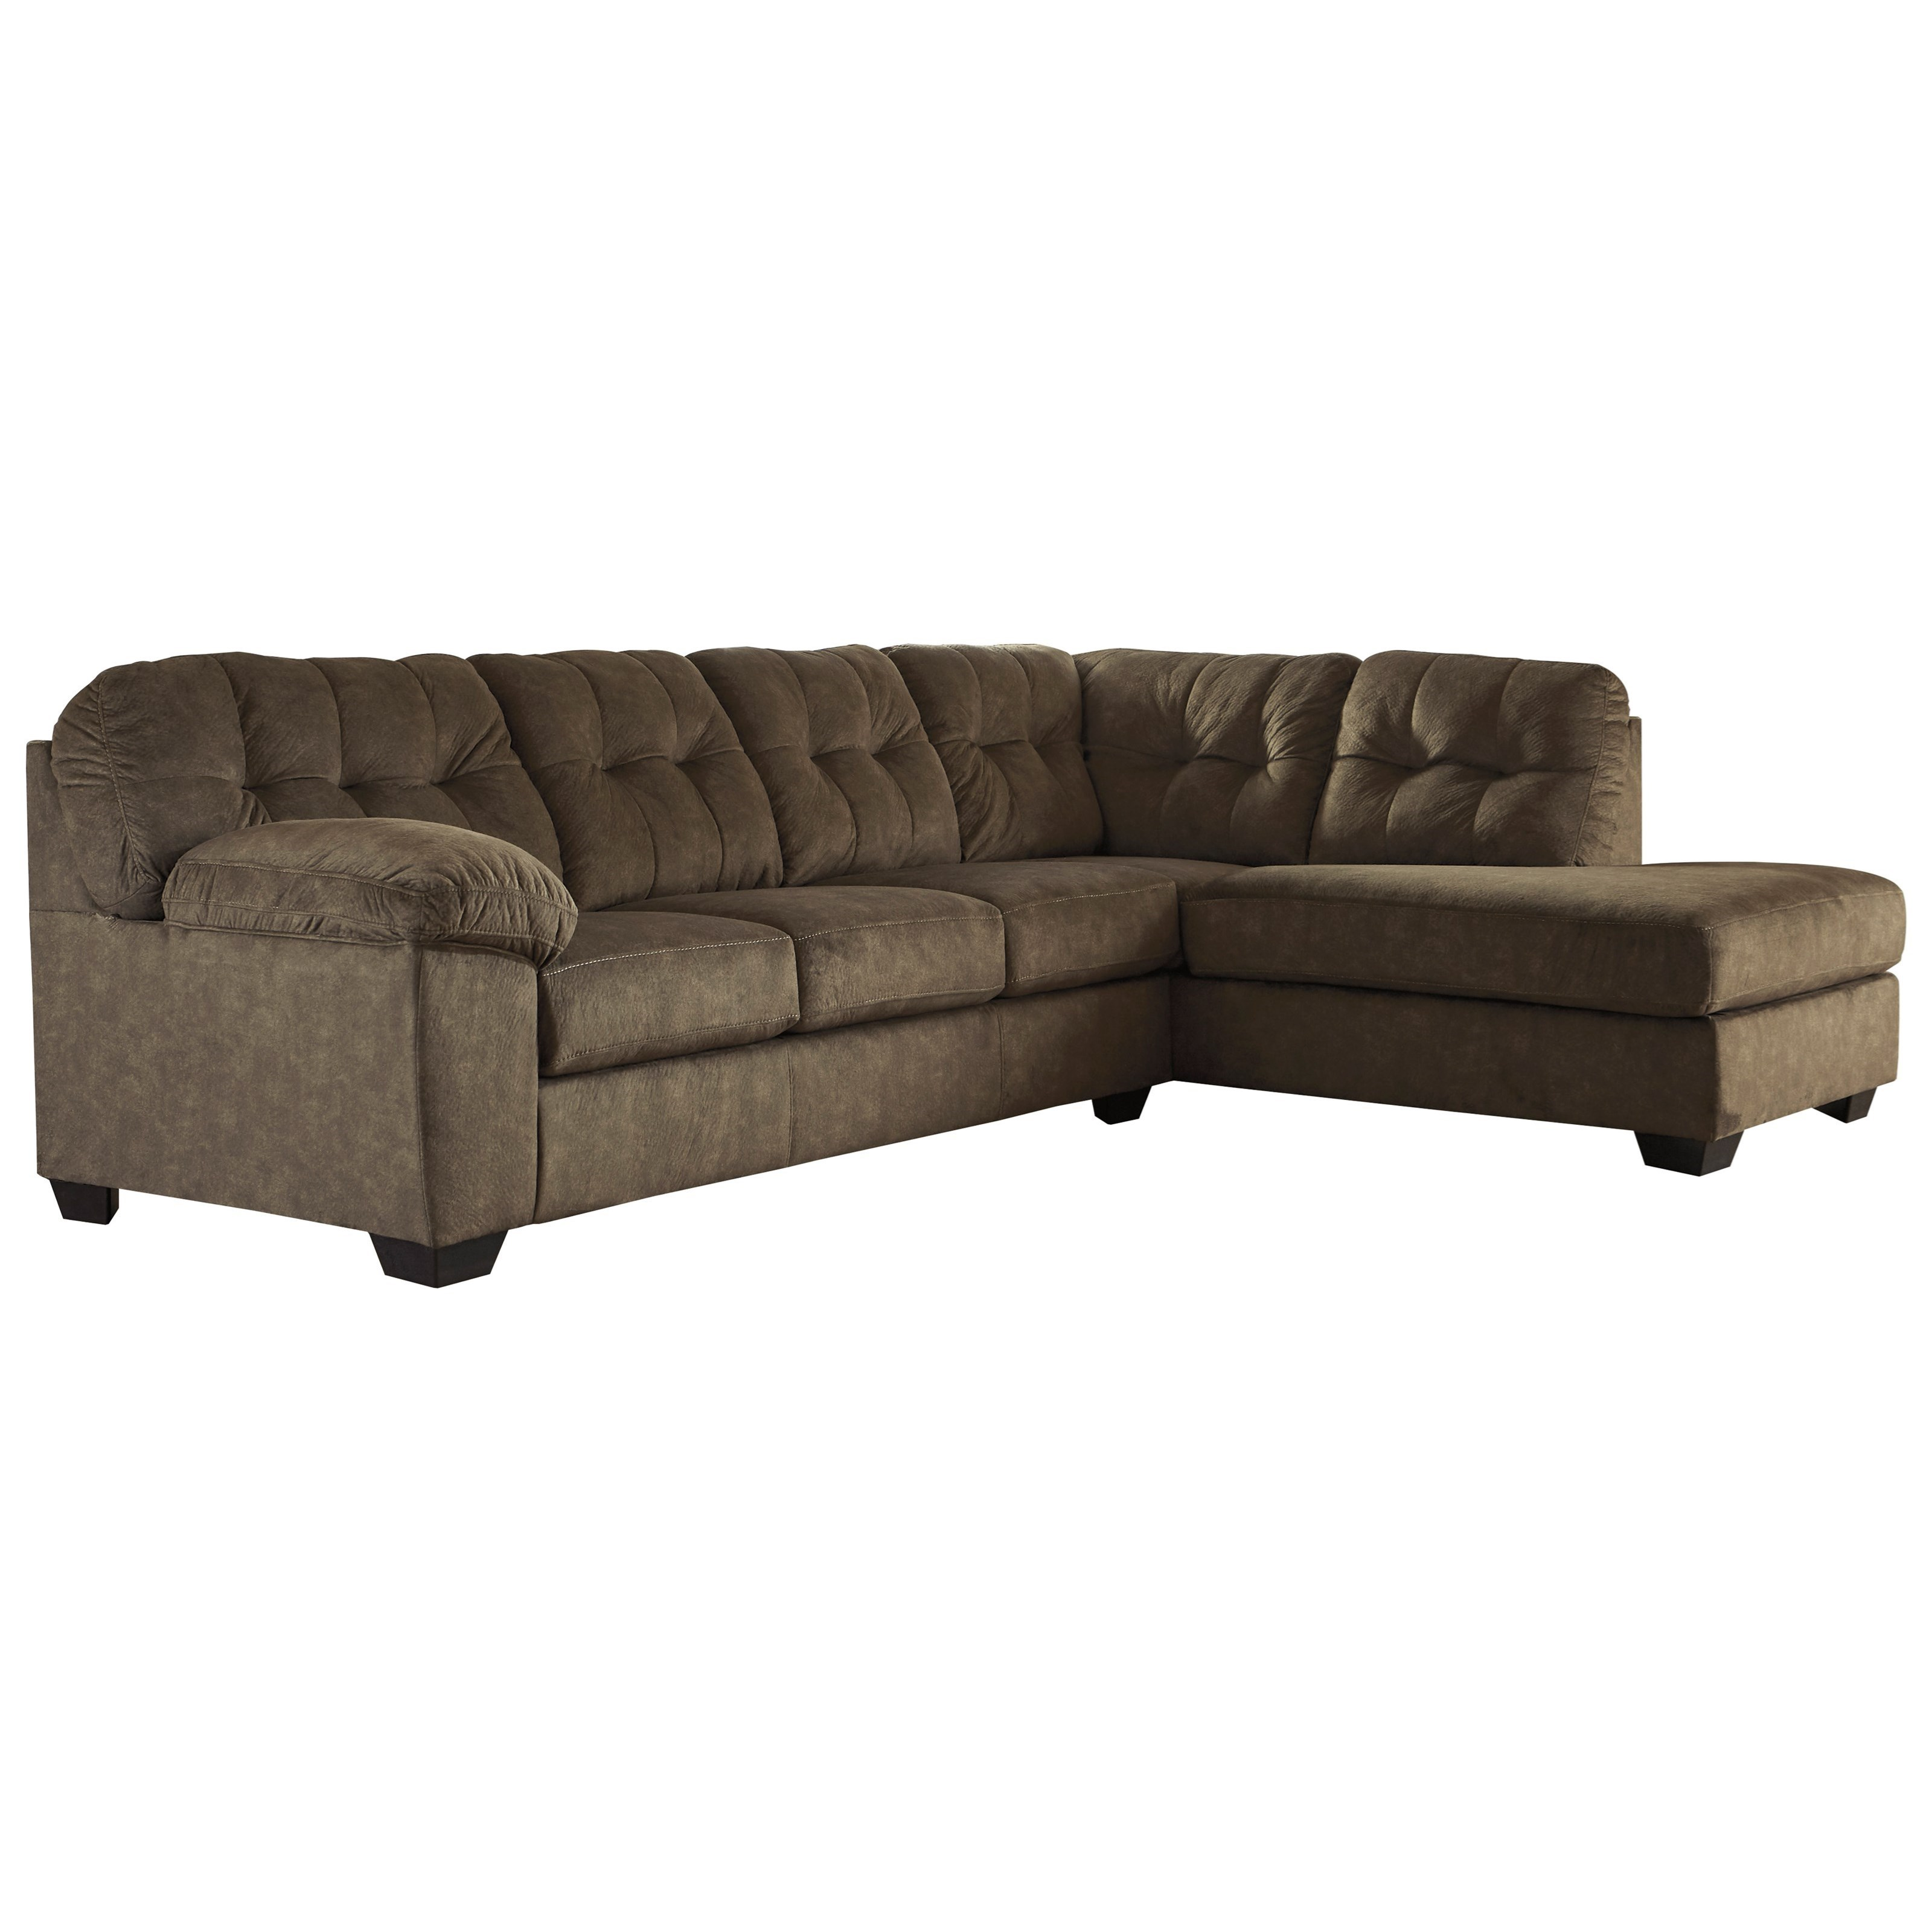 Accrington Sectional with Right Chaise by Signature Design by Ashley at Value City Furniture